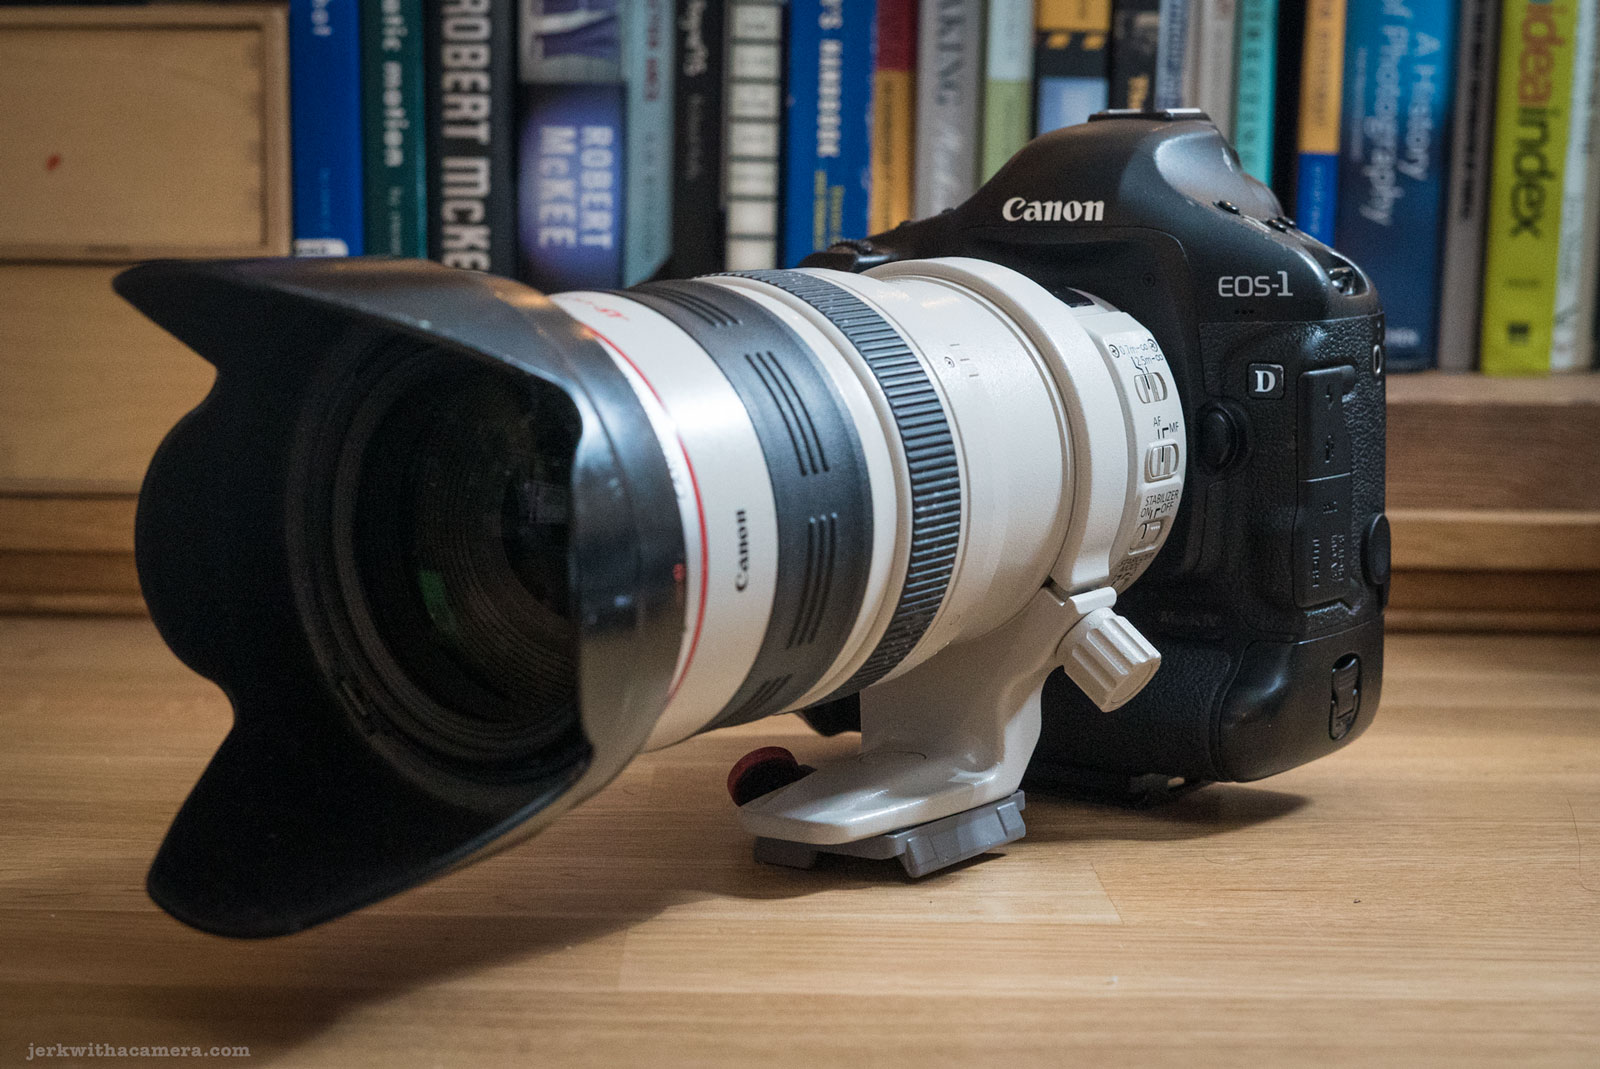 New Lens to go with an old camera.